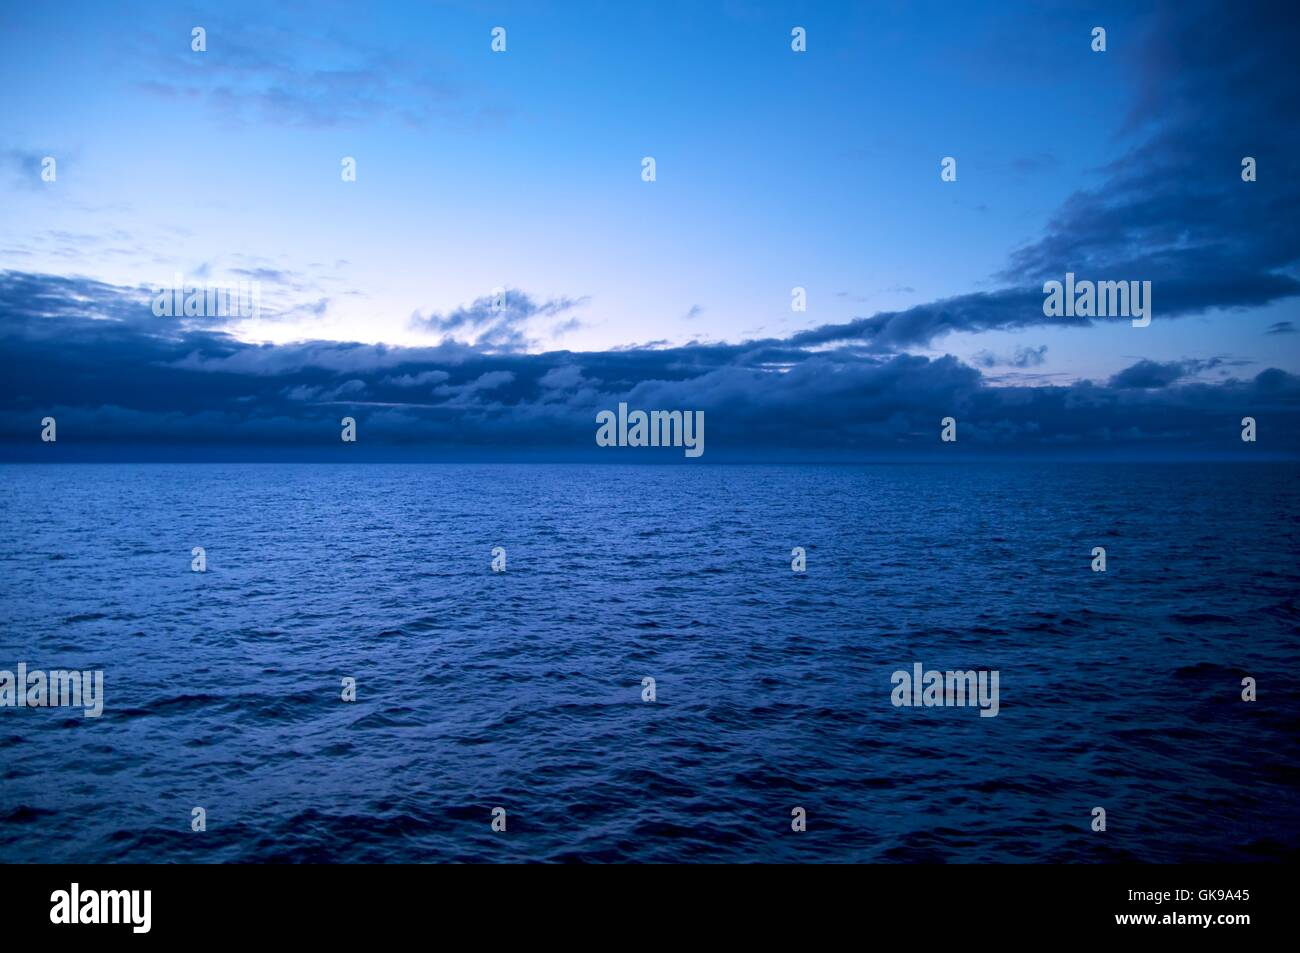 the vastness of the sea - Stock Image